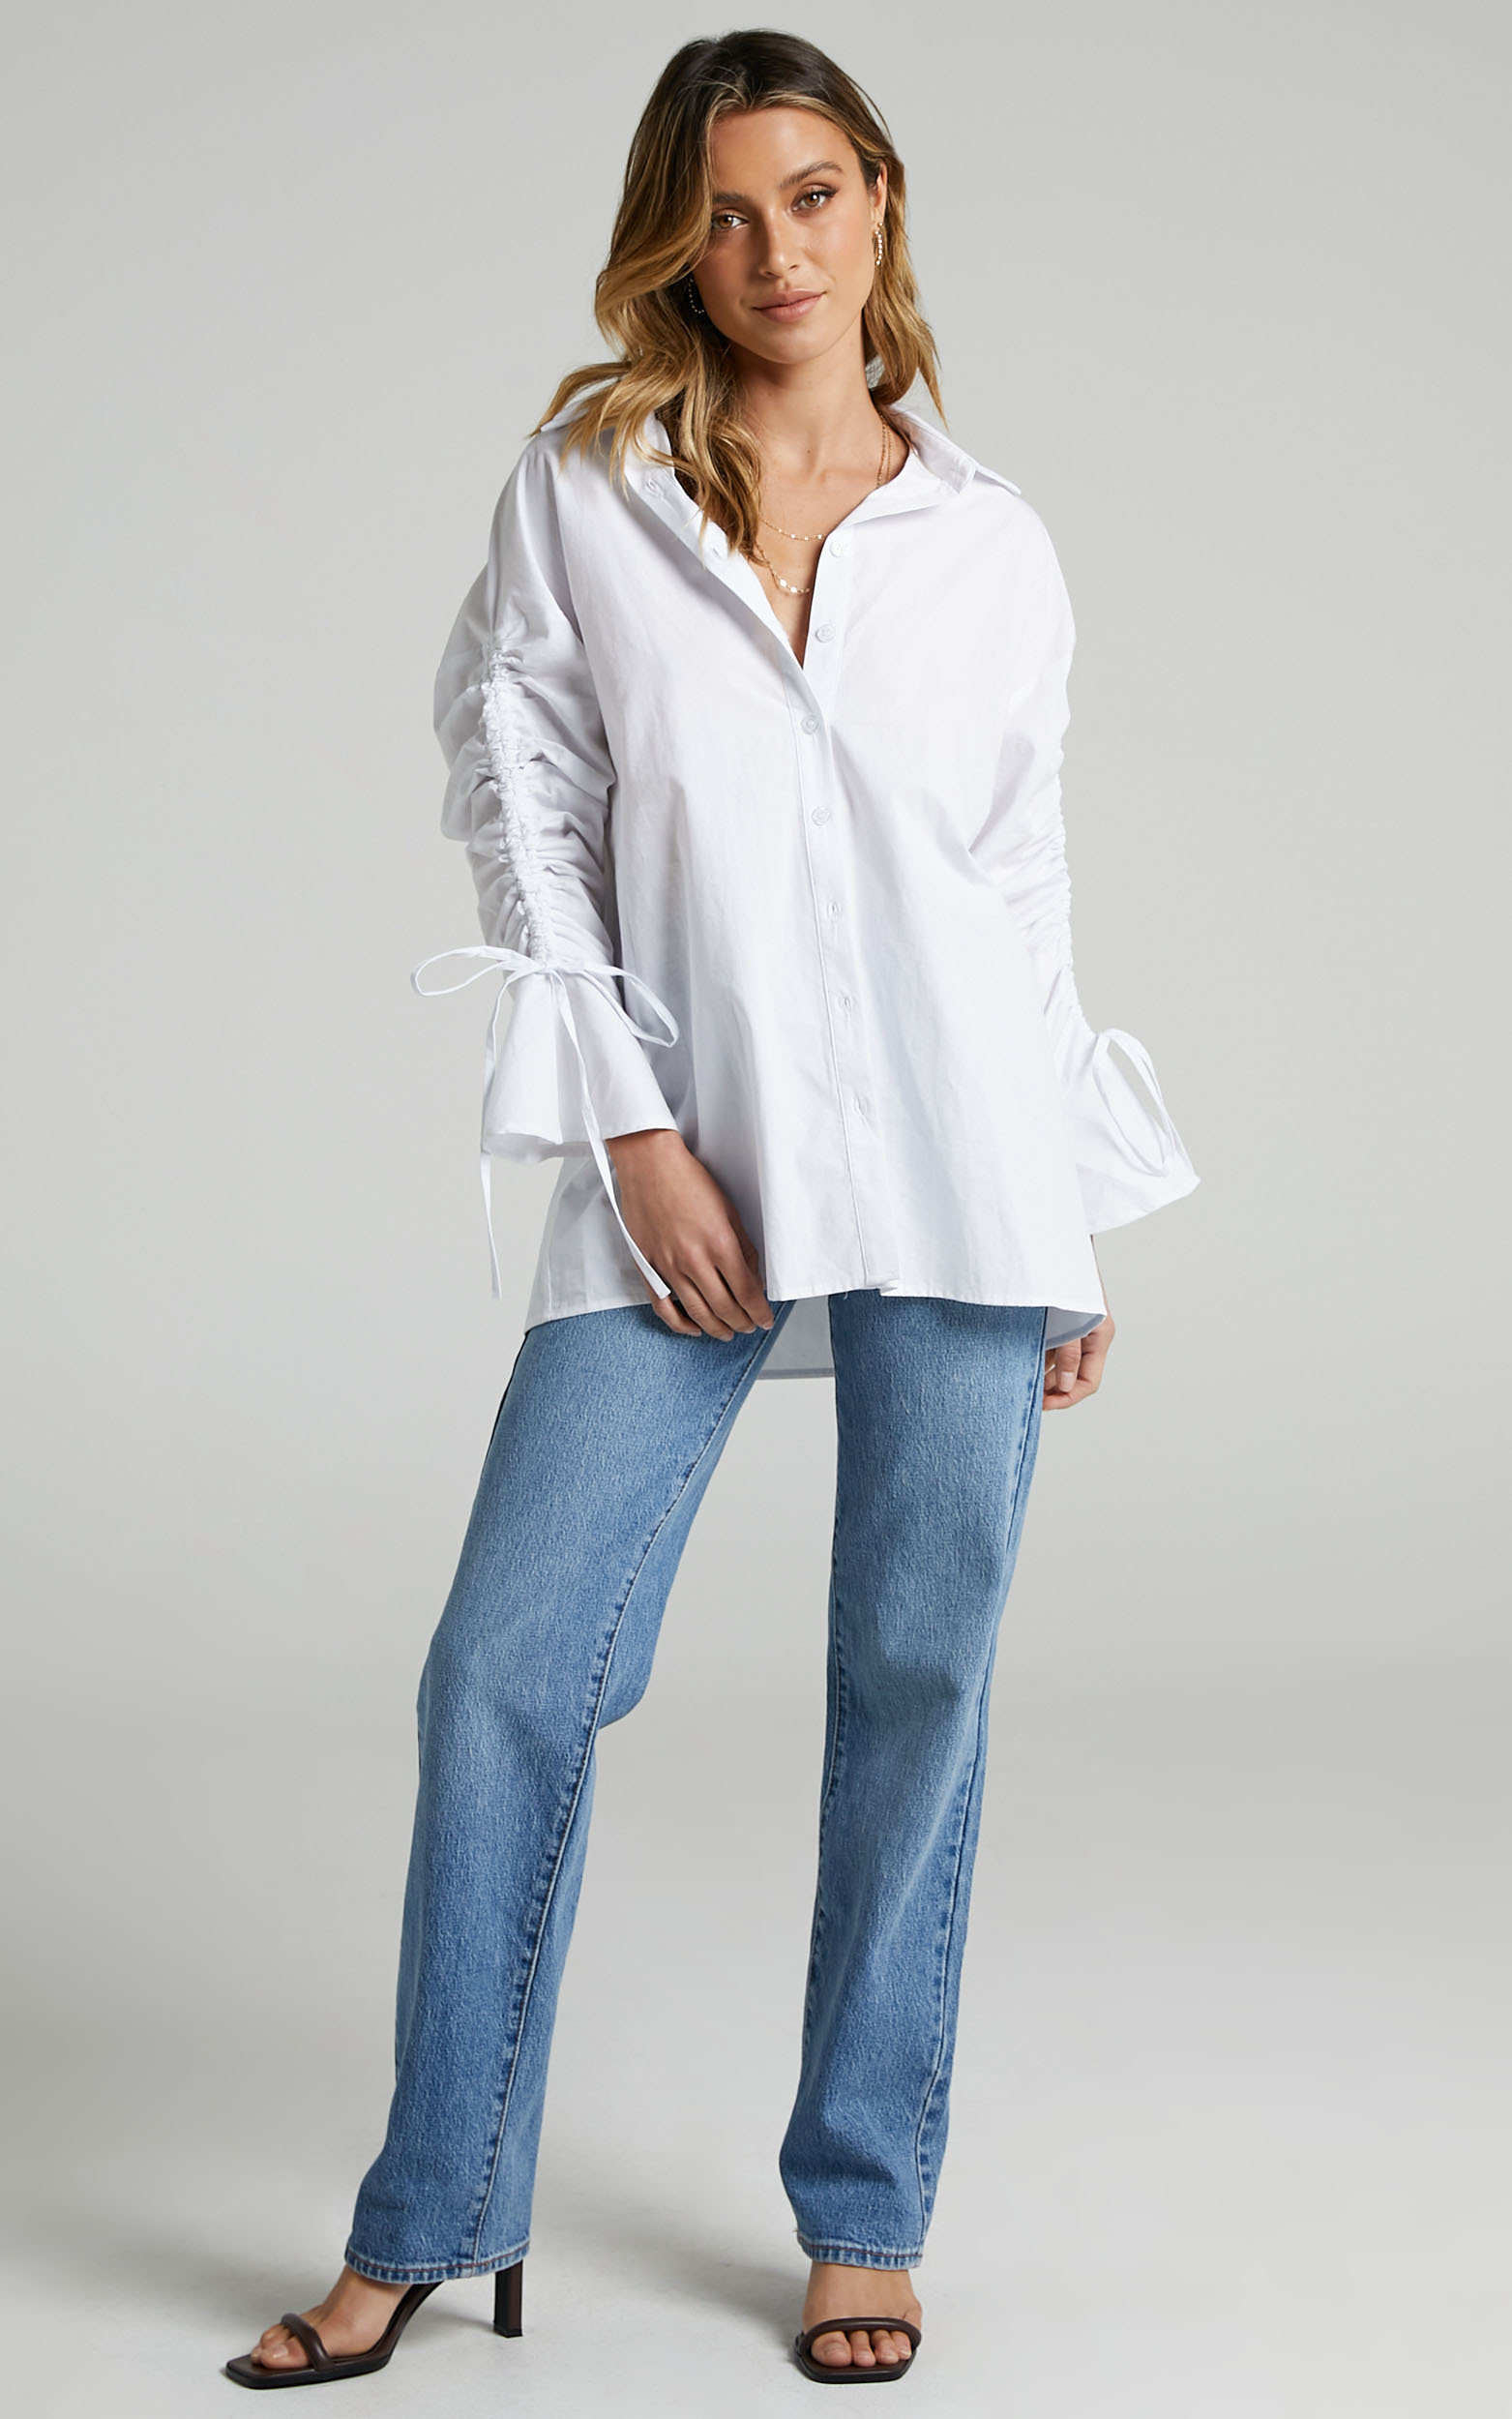 Melli Longsleeve Ruched Shirt in White - 04, WHT1, hi-res image number null